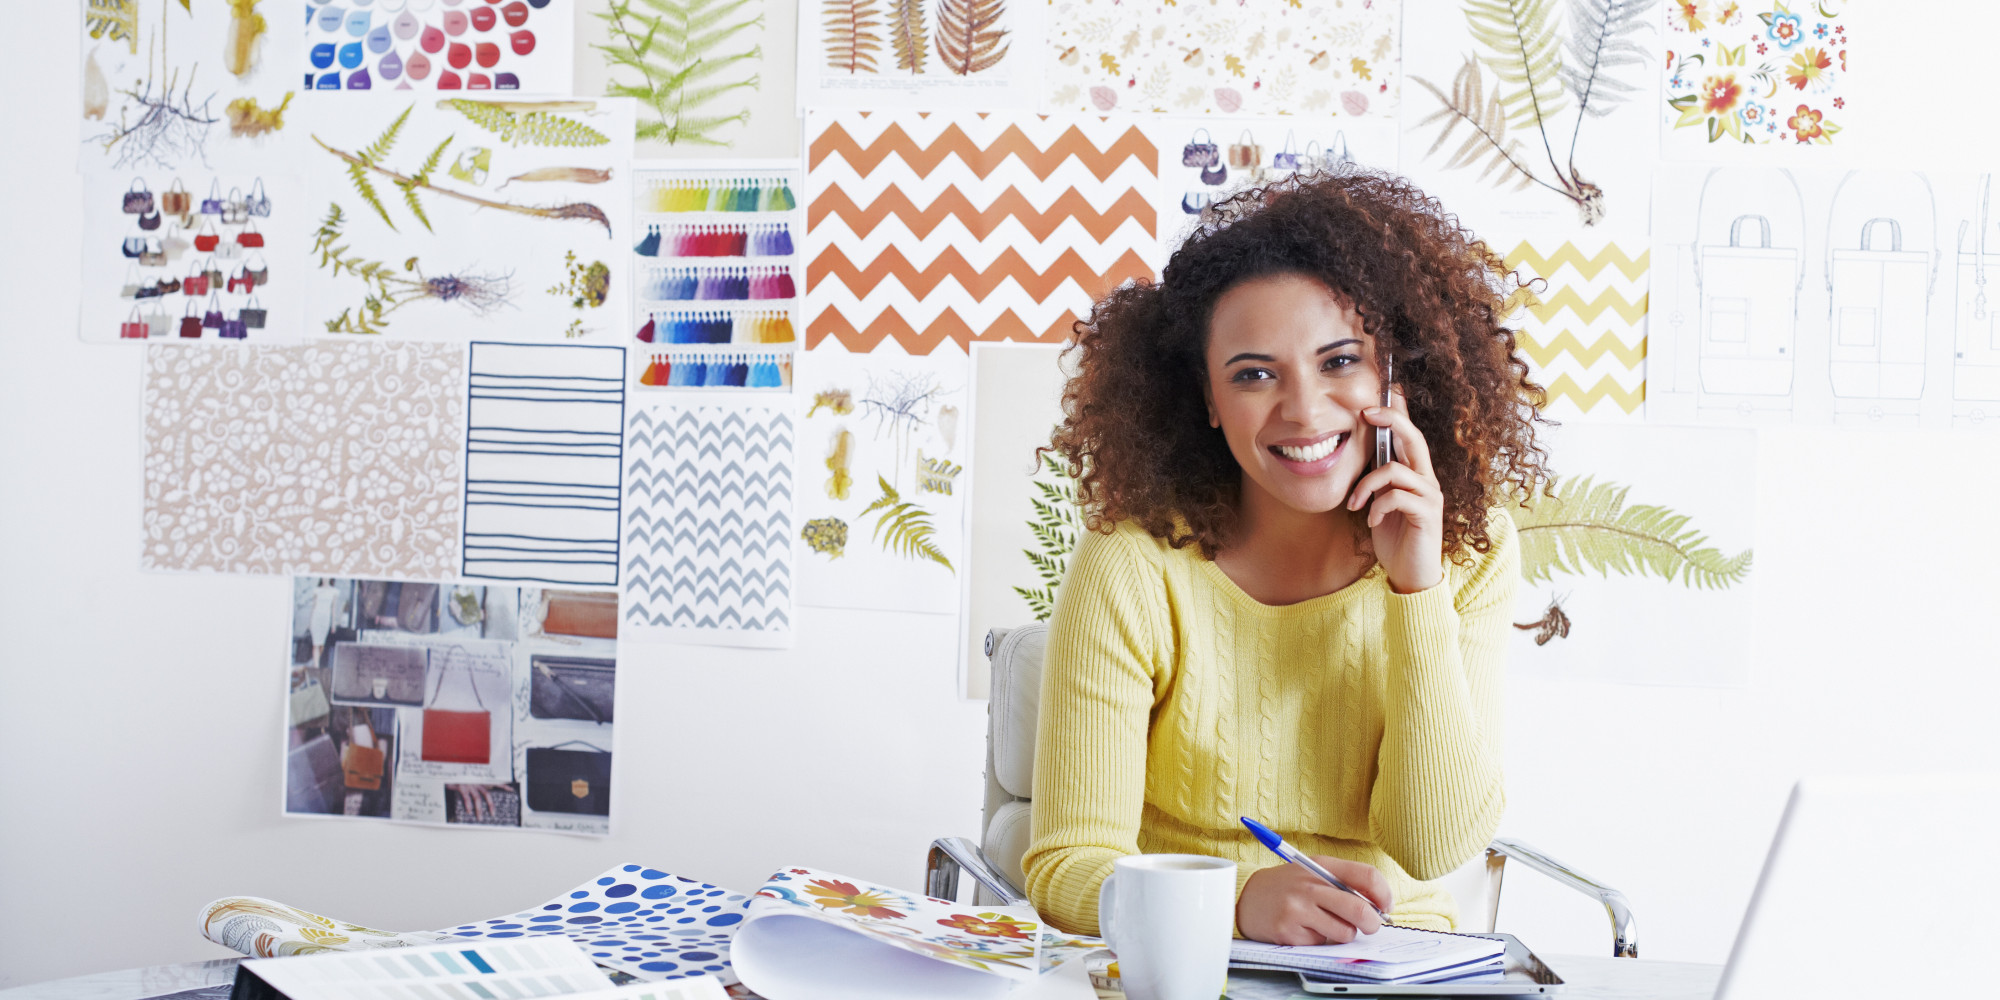 Awe Inspiring 5 Tips For Working From Home The Huffington Post Largest Home Design Picture Inspirations Pitcheantrous